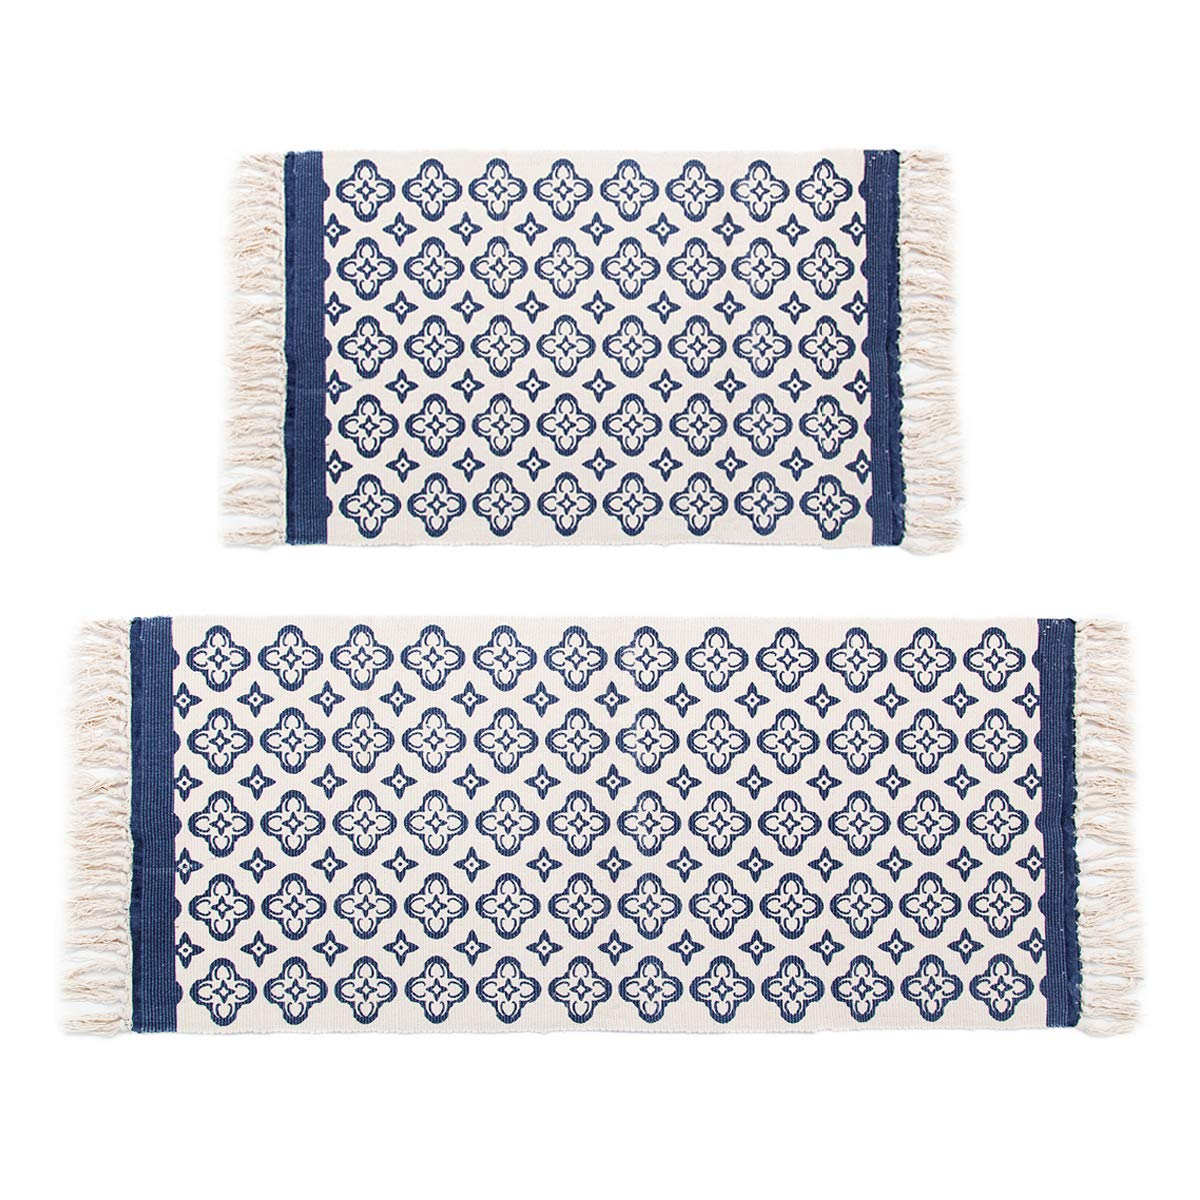 Pauwer Blue Moroccan Cotton Area Rug Set 2 Piece 2'x4.2'+2'x3' Machine Washable Printed Cotton Rugs with Tassel Hand Woven Cotton Rug Runner for Kitchen, Living Room, Bedroom